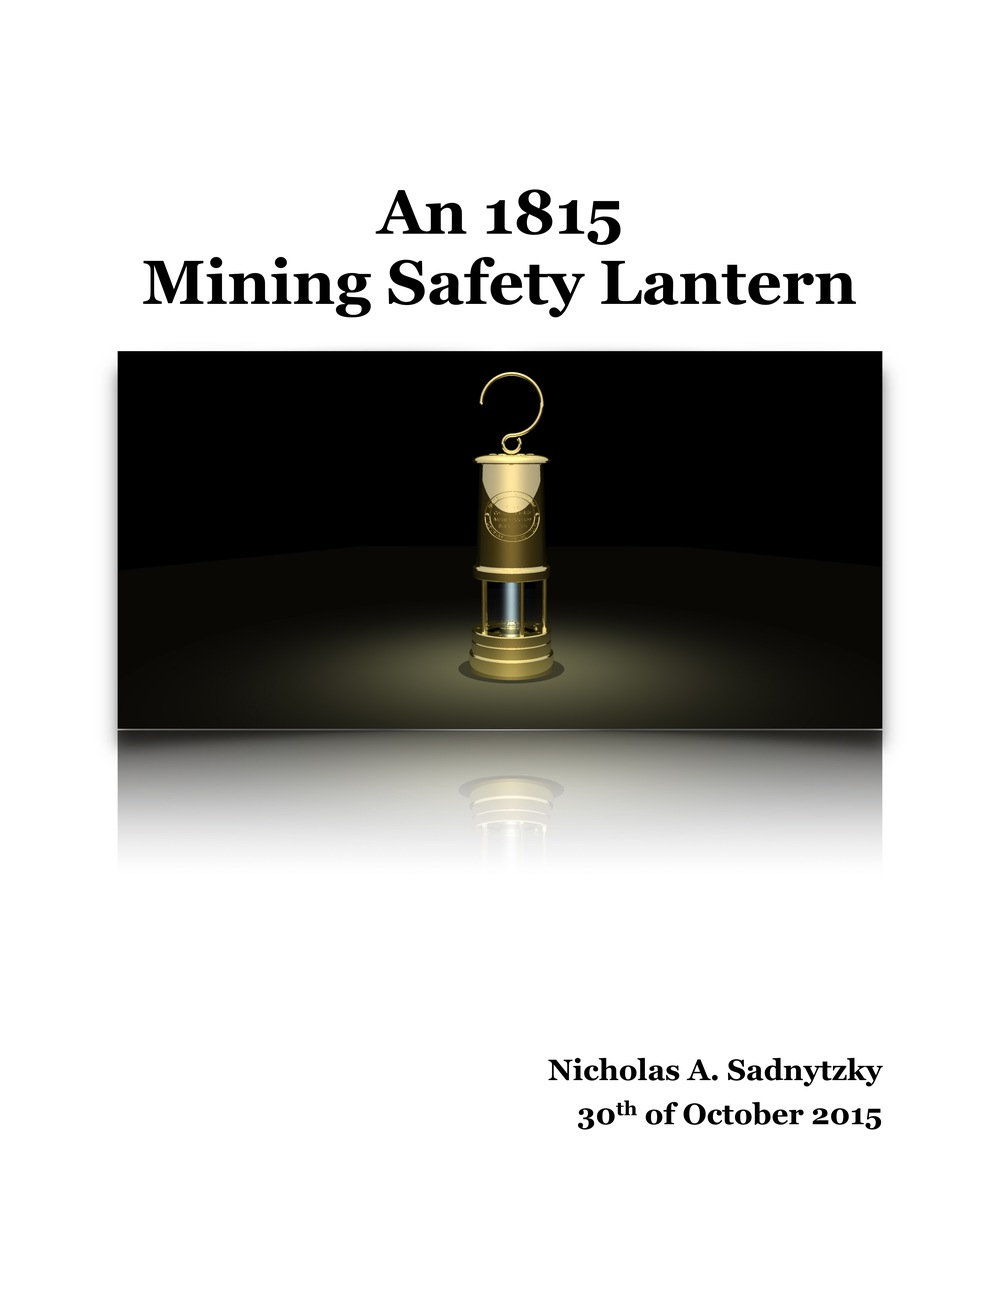 An 1815 Mining Safety Lantern Tutorial _Preview_NAOMS .jpeg